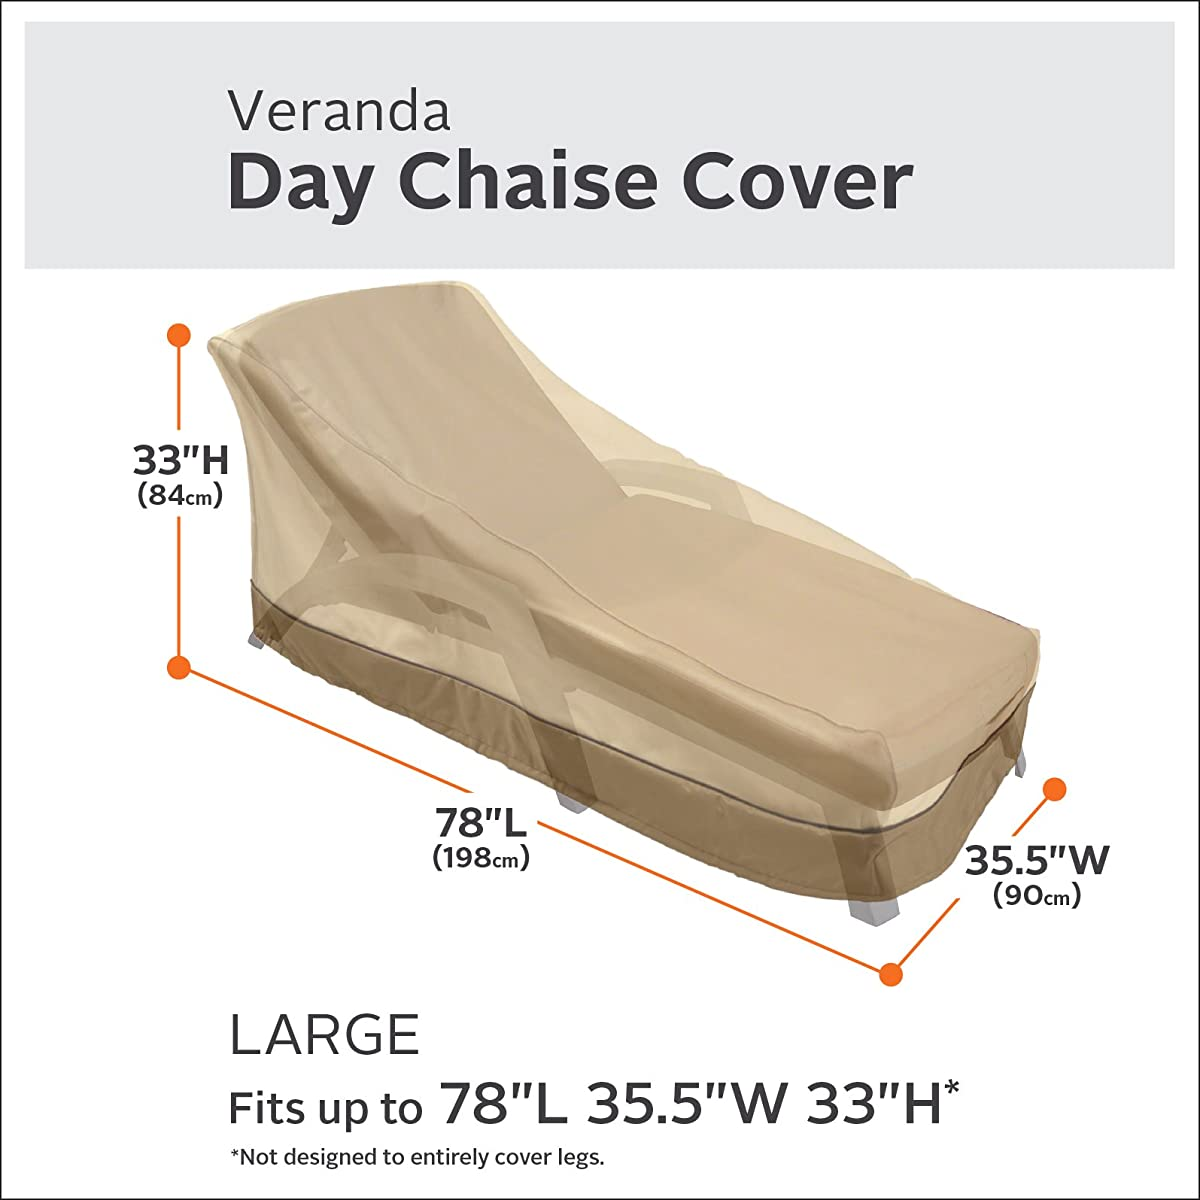 Classic Accessories Veranda Day Chaise Chair Cover - Durable and Water Resistant Patio Cover, Large